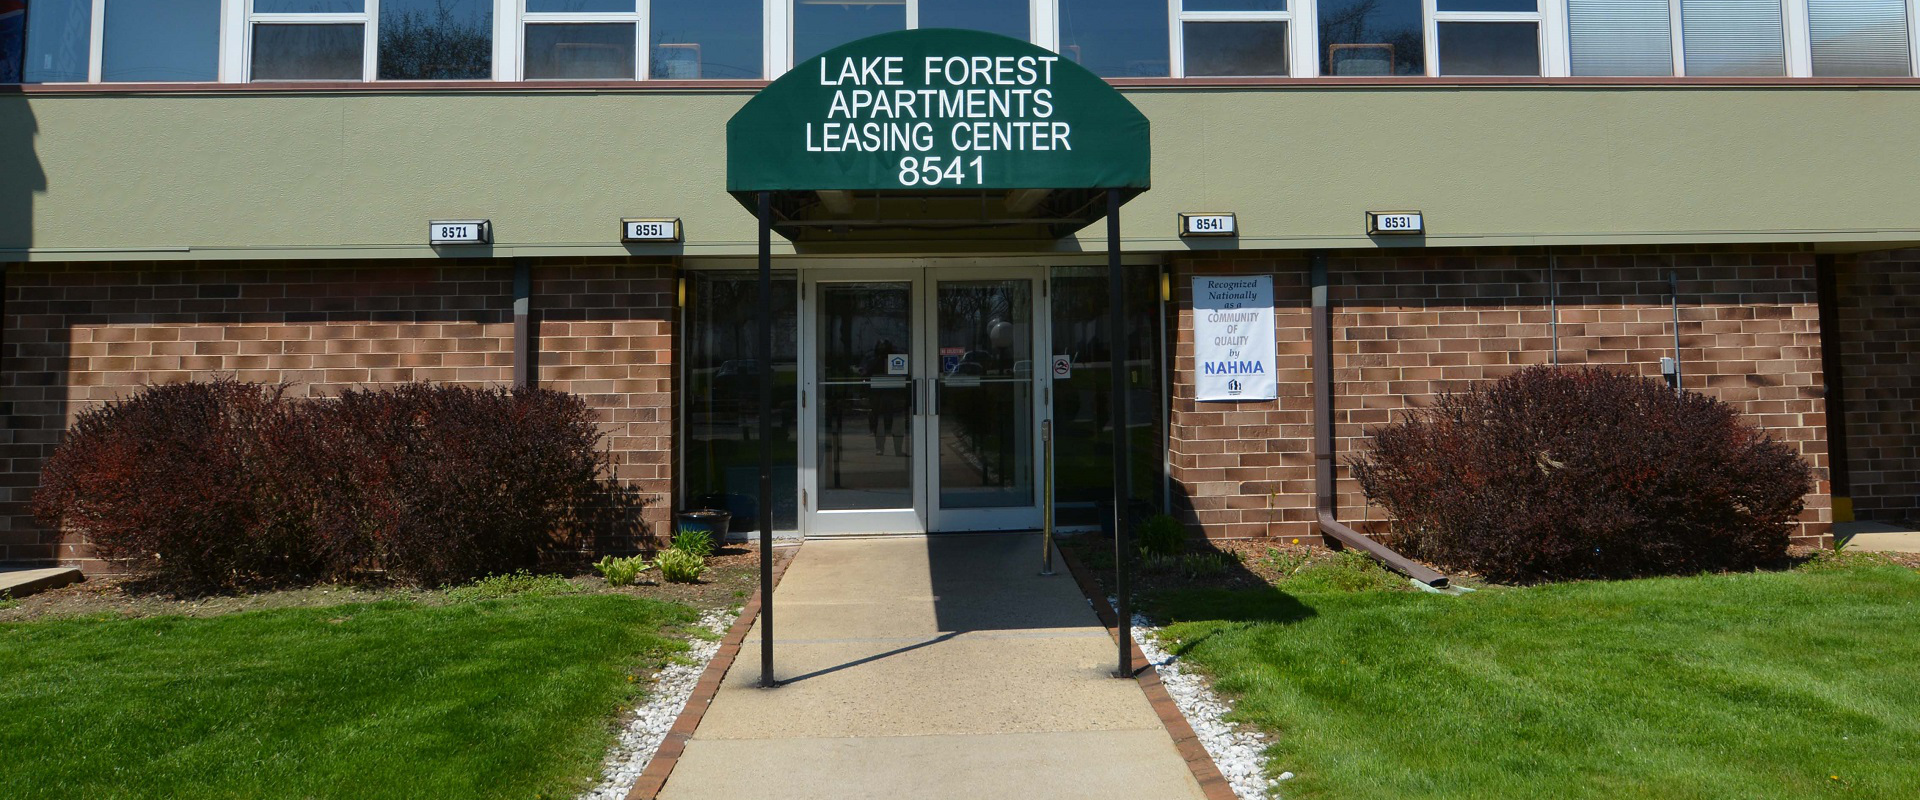 Image of Lake Forest in Milwaukee, Wisconsin